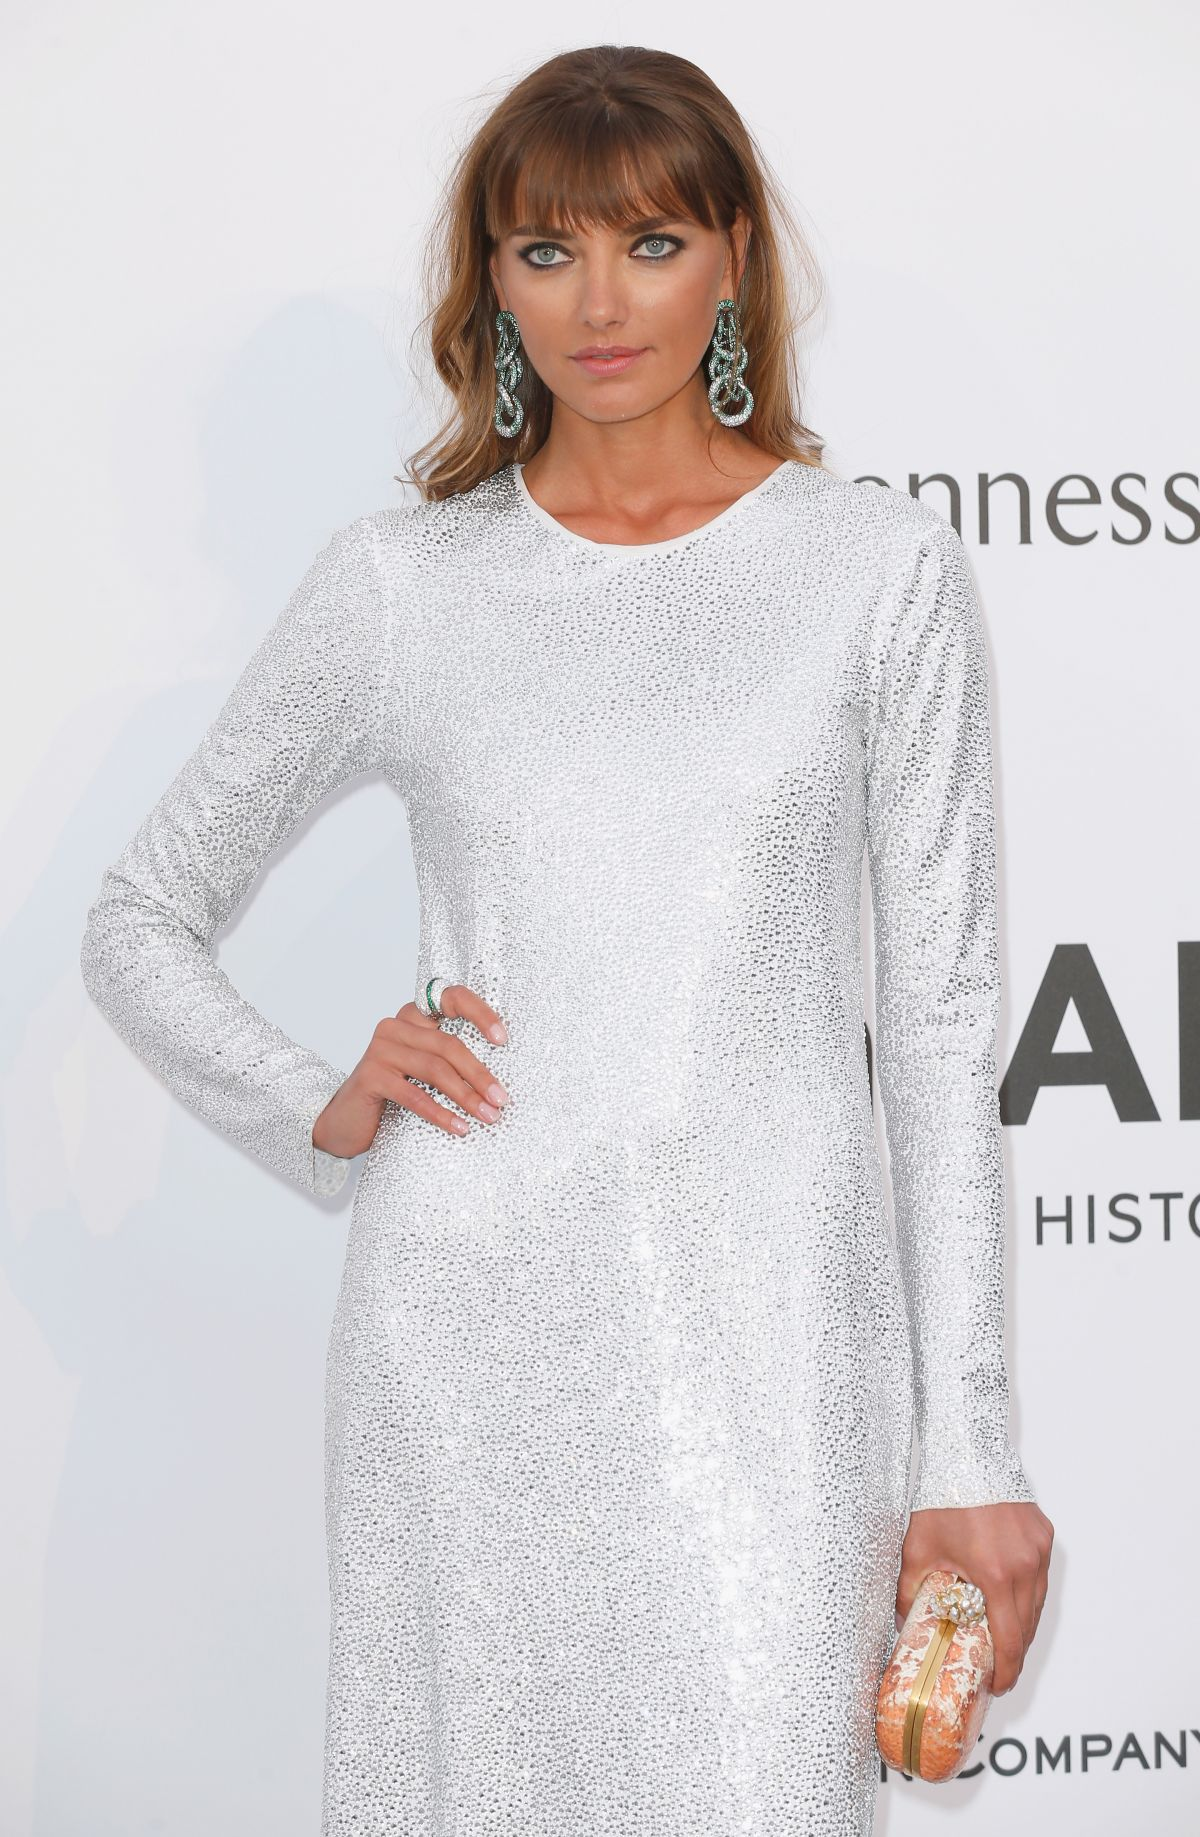 ALINA BAIKOVA at Amfar's 2015 Cinema Against Aids Gala in Cap d'Antibes